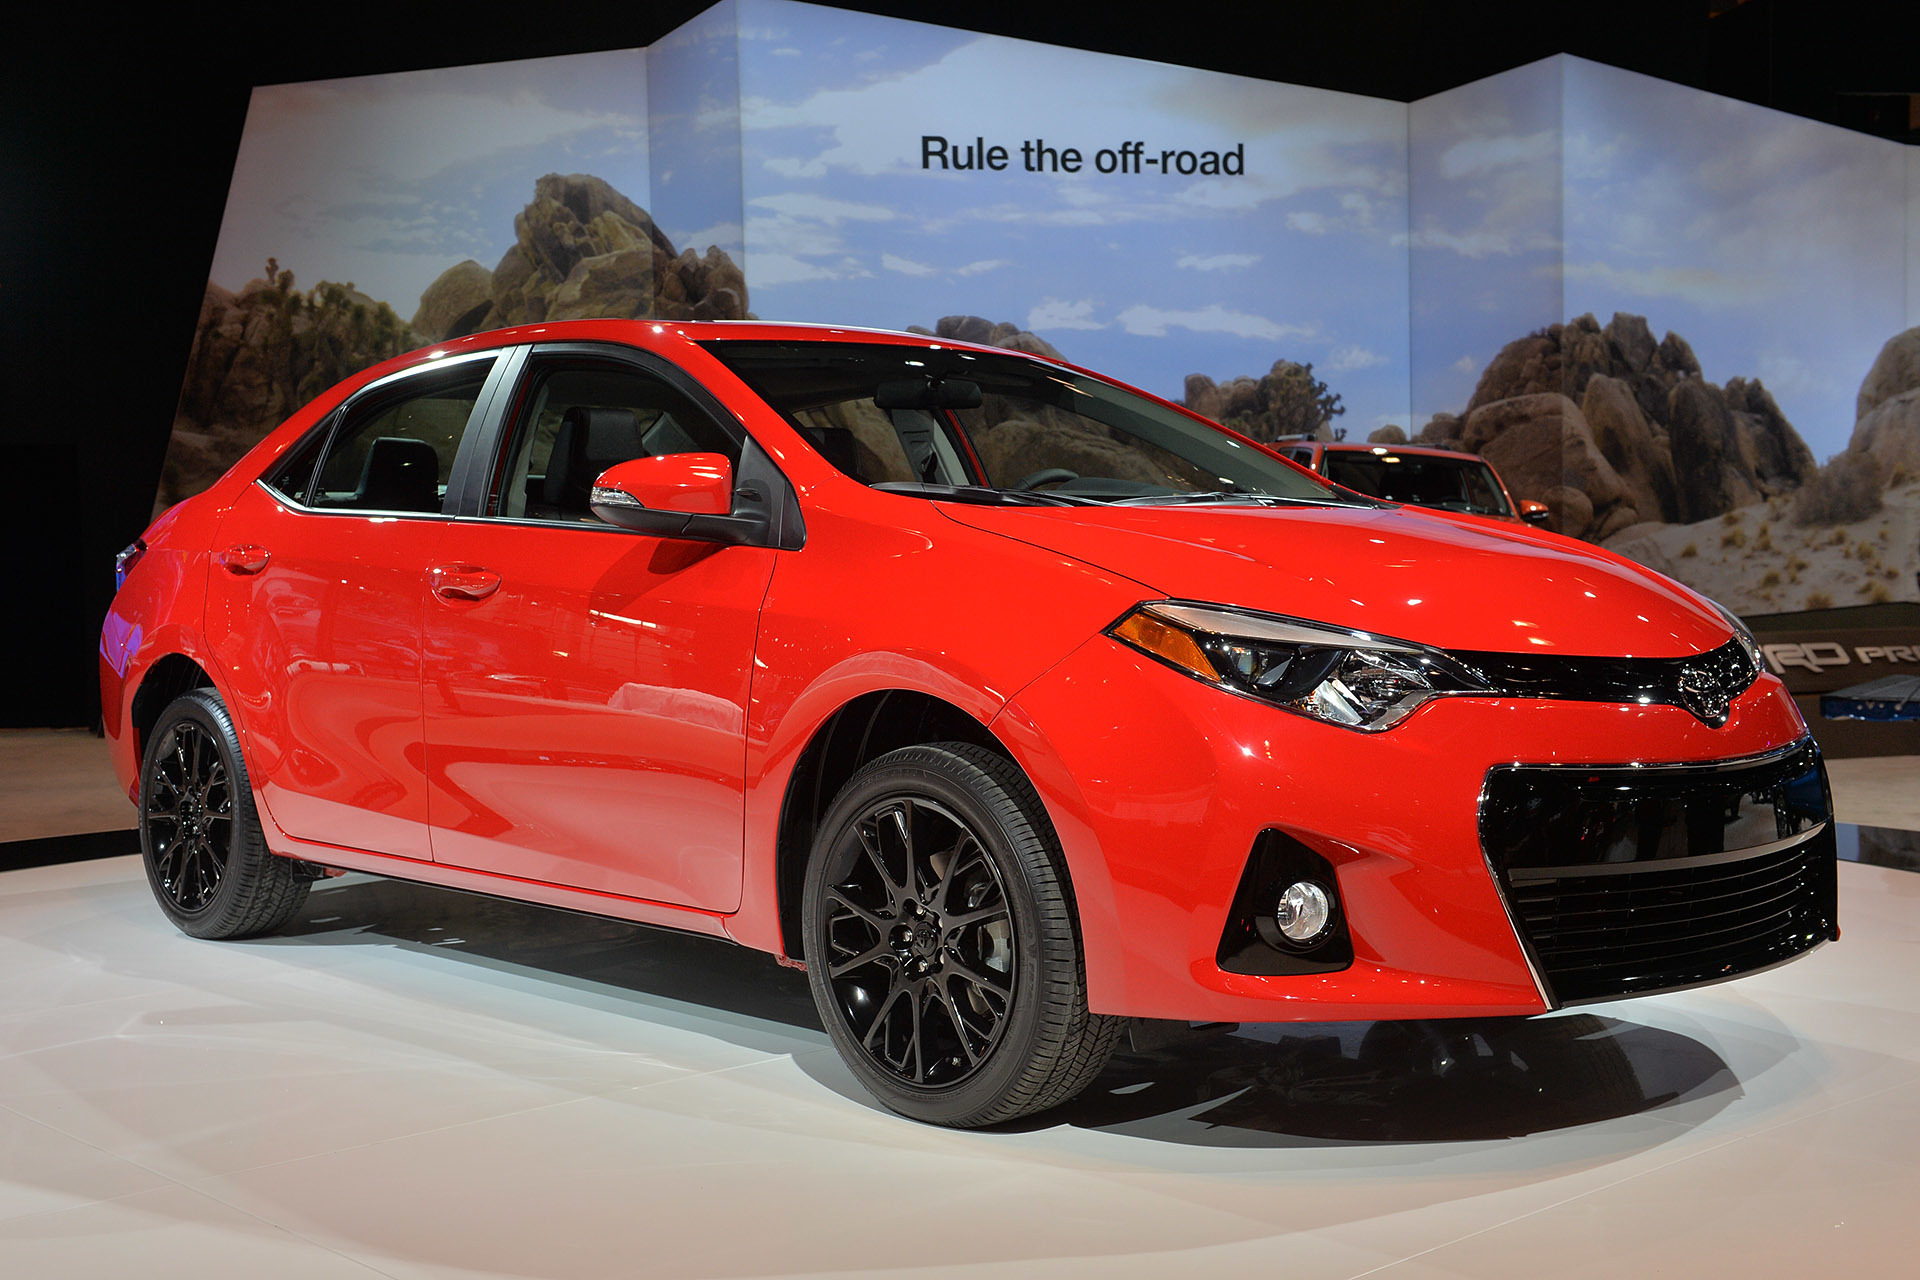 2016 toyota corolla special edition chicago 2015 0. Black Bedroom Furniture Sets. Home Design Ideas